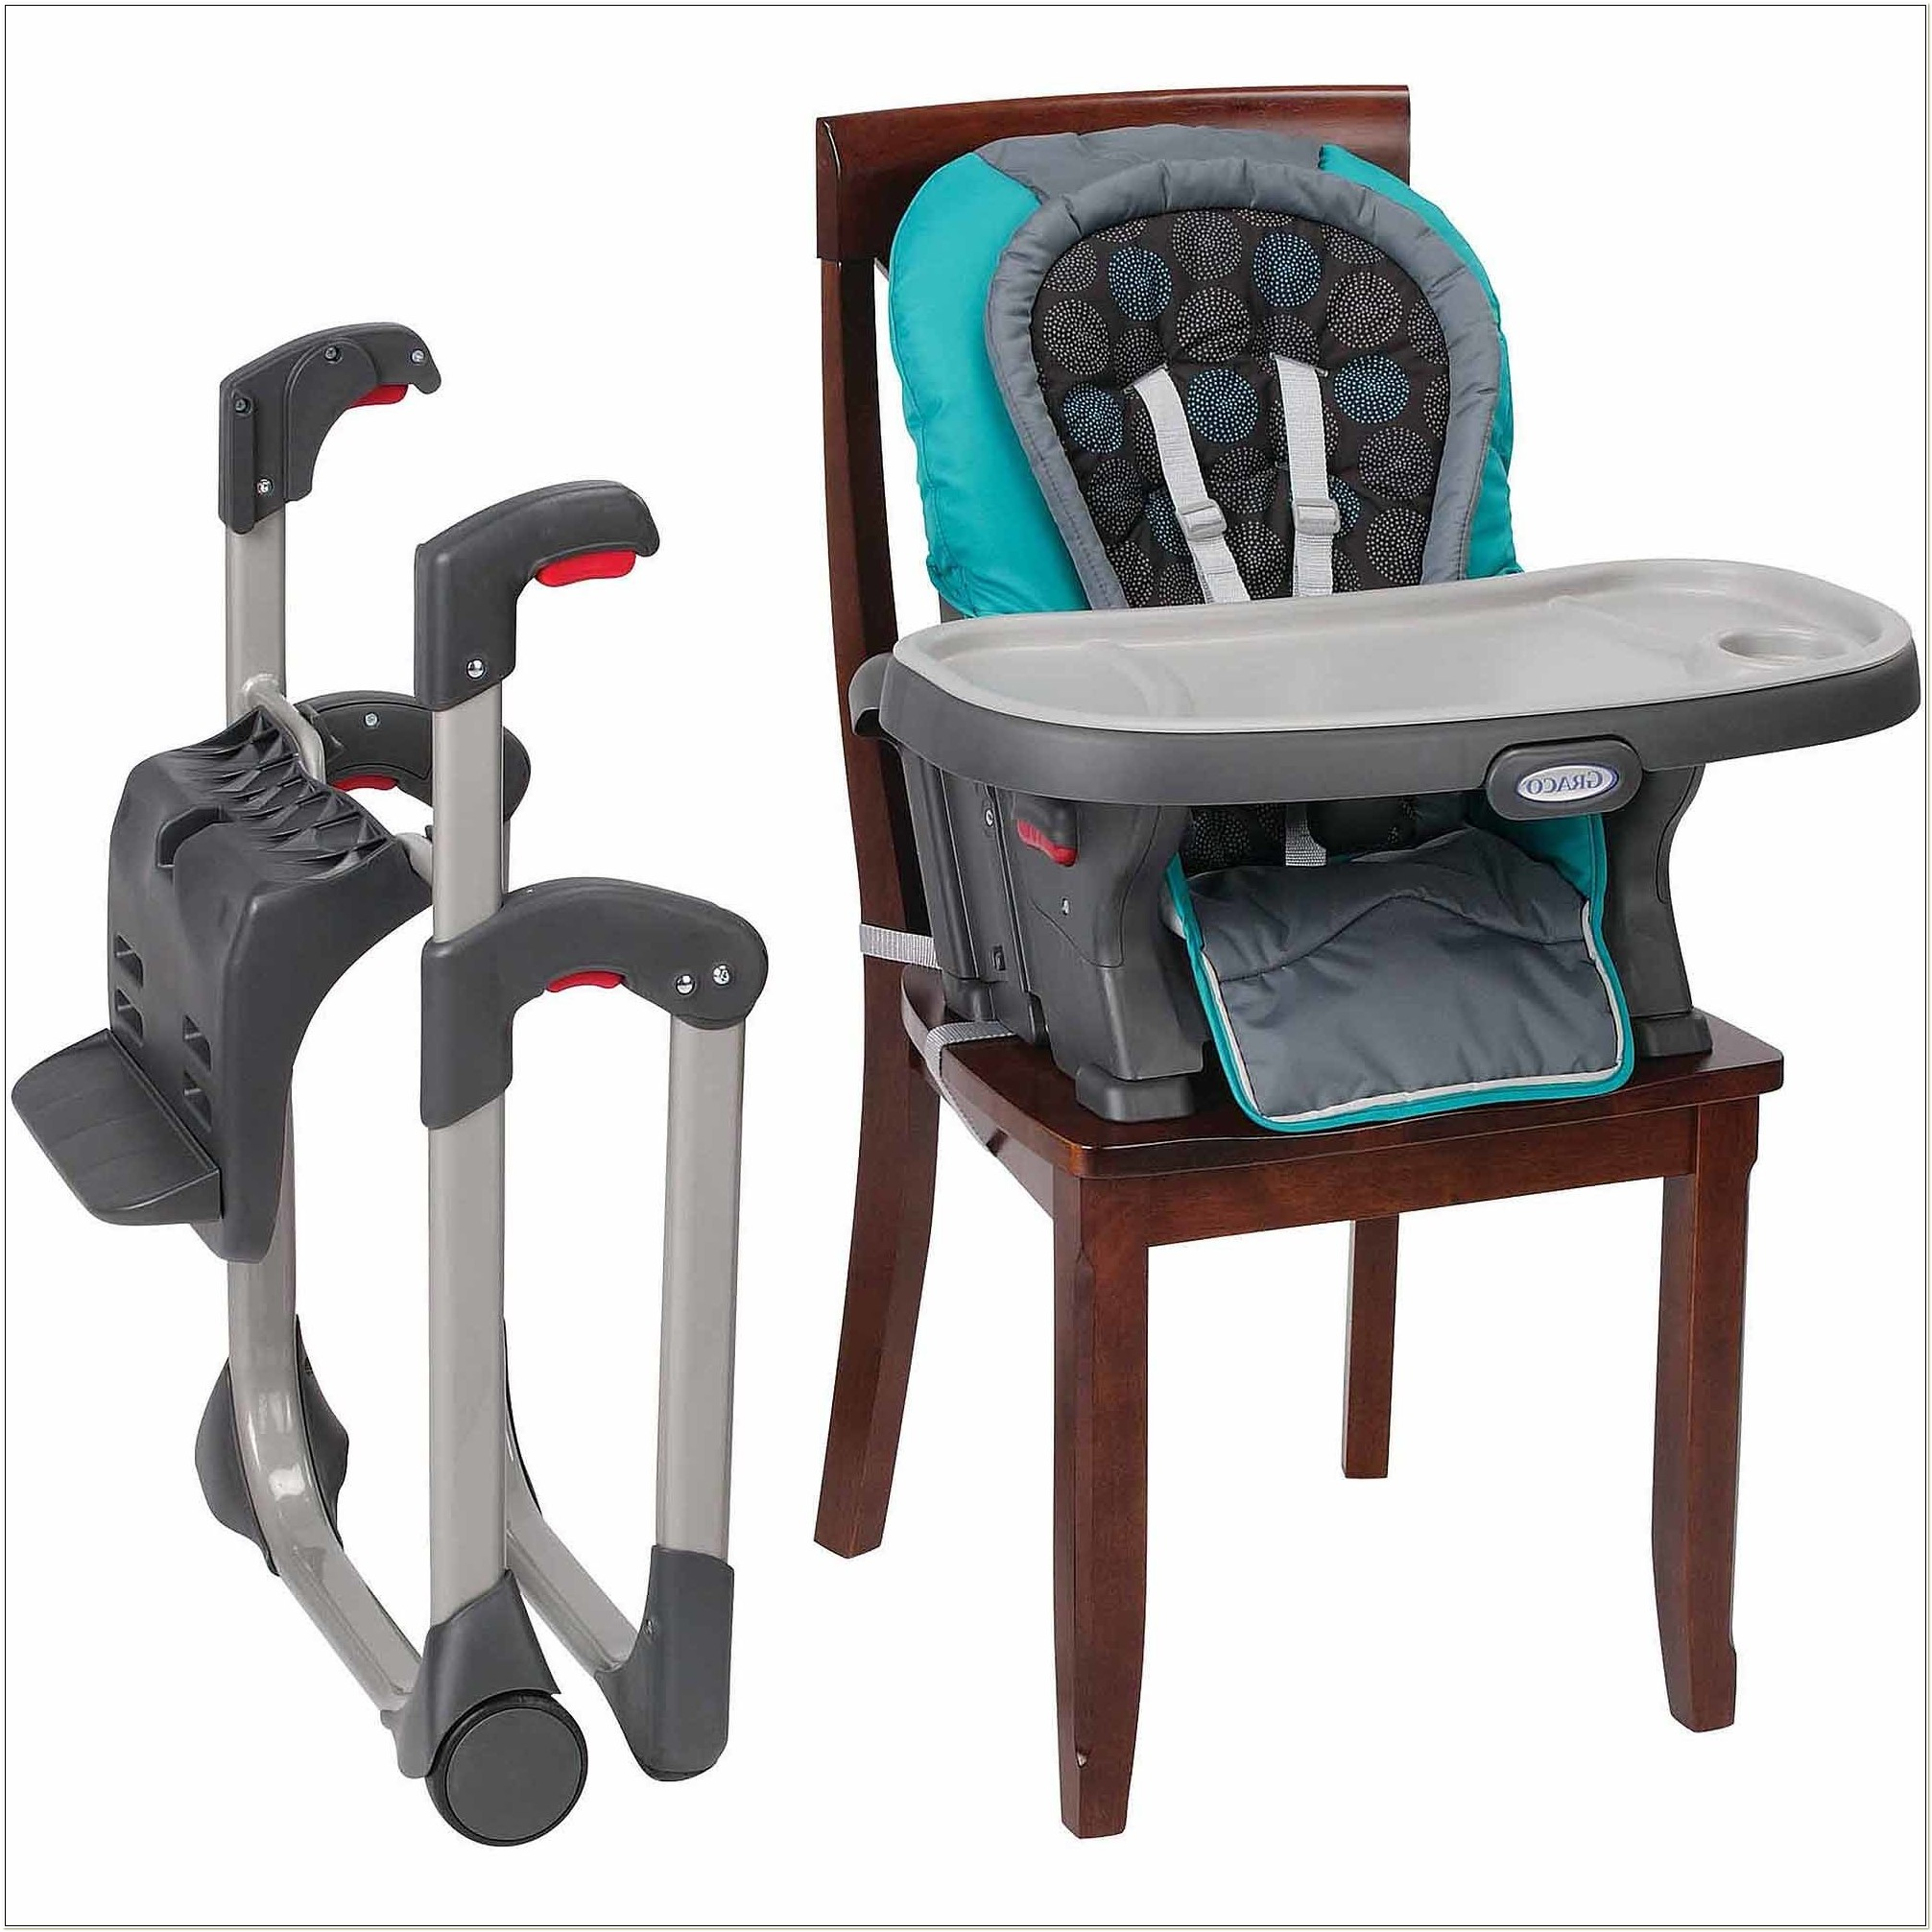 Graco Duodiner Lx High Chair Manual